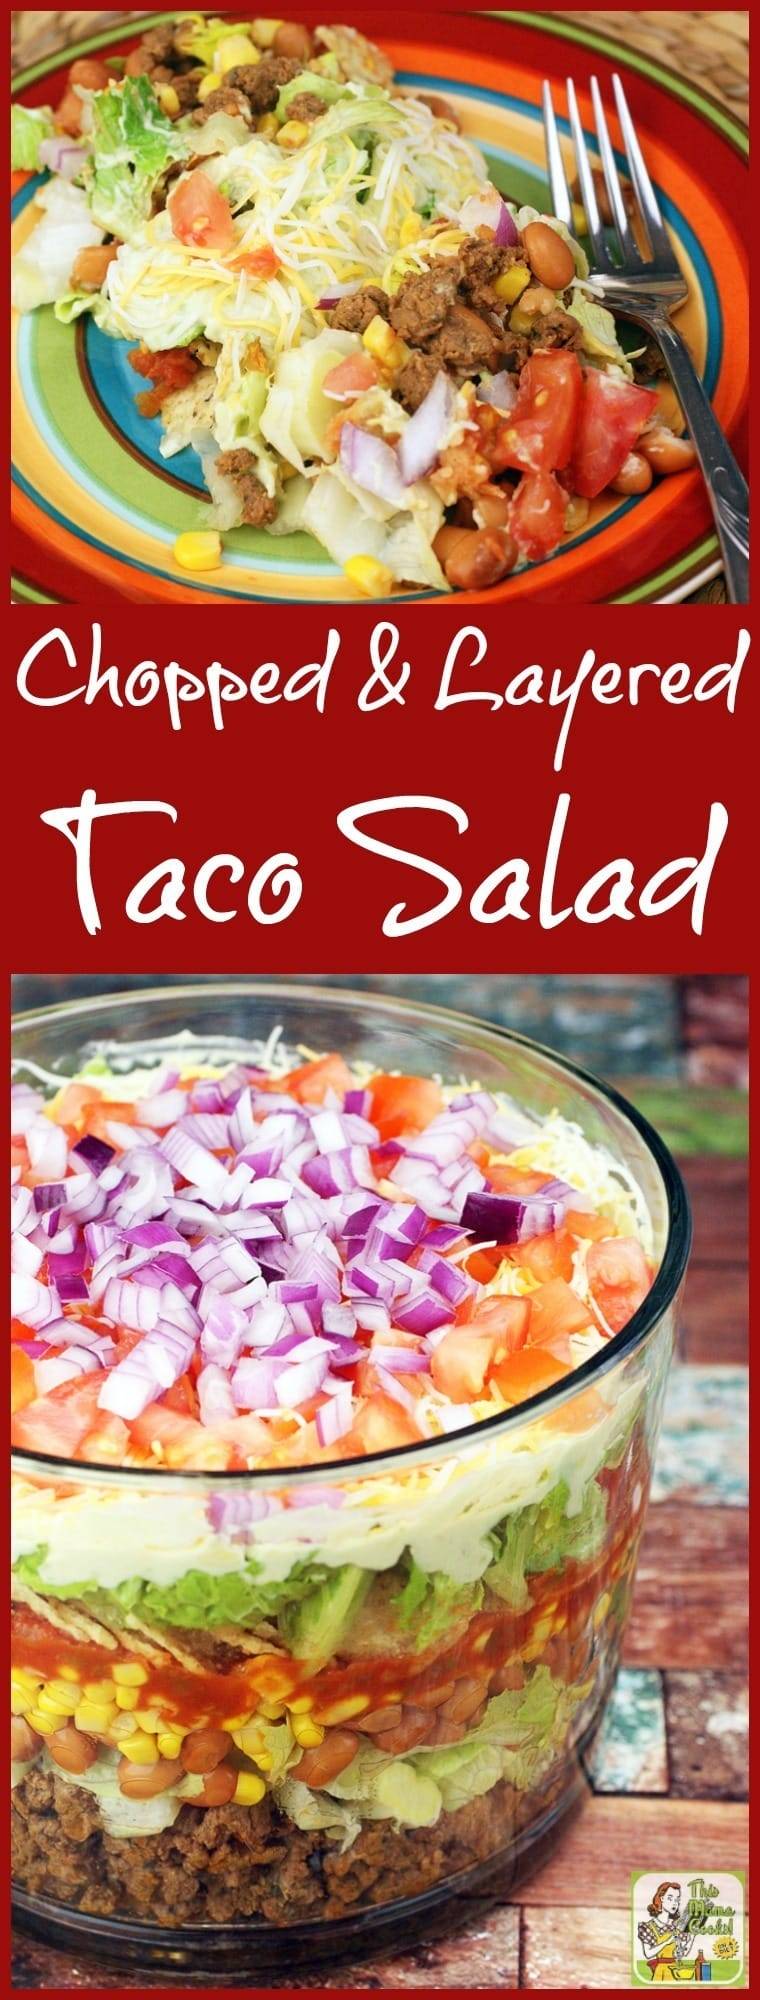 Looking for a healthy taco salad recipe for dinner? Try this Chopped & Layered Taco Salad recipe! Serve it in a trifle bowl or punch bowl. Click to get this ideal potluck taco salad recipe! #tacosalad #salad #mexicanfood #healthyrecipe #healthyrecipes #tacos #easyrecipe #groundmeat #beef